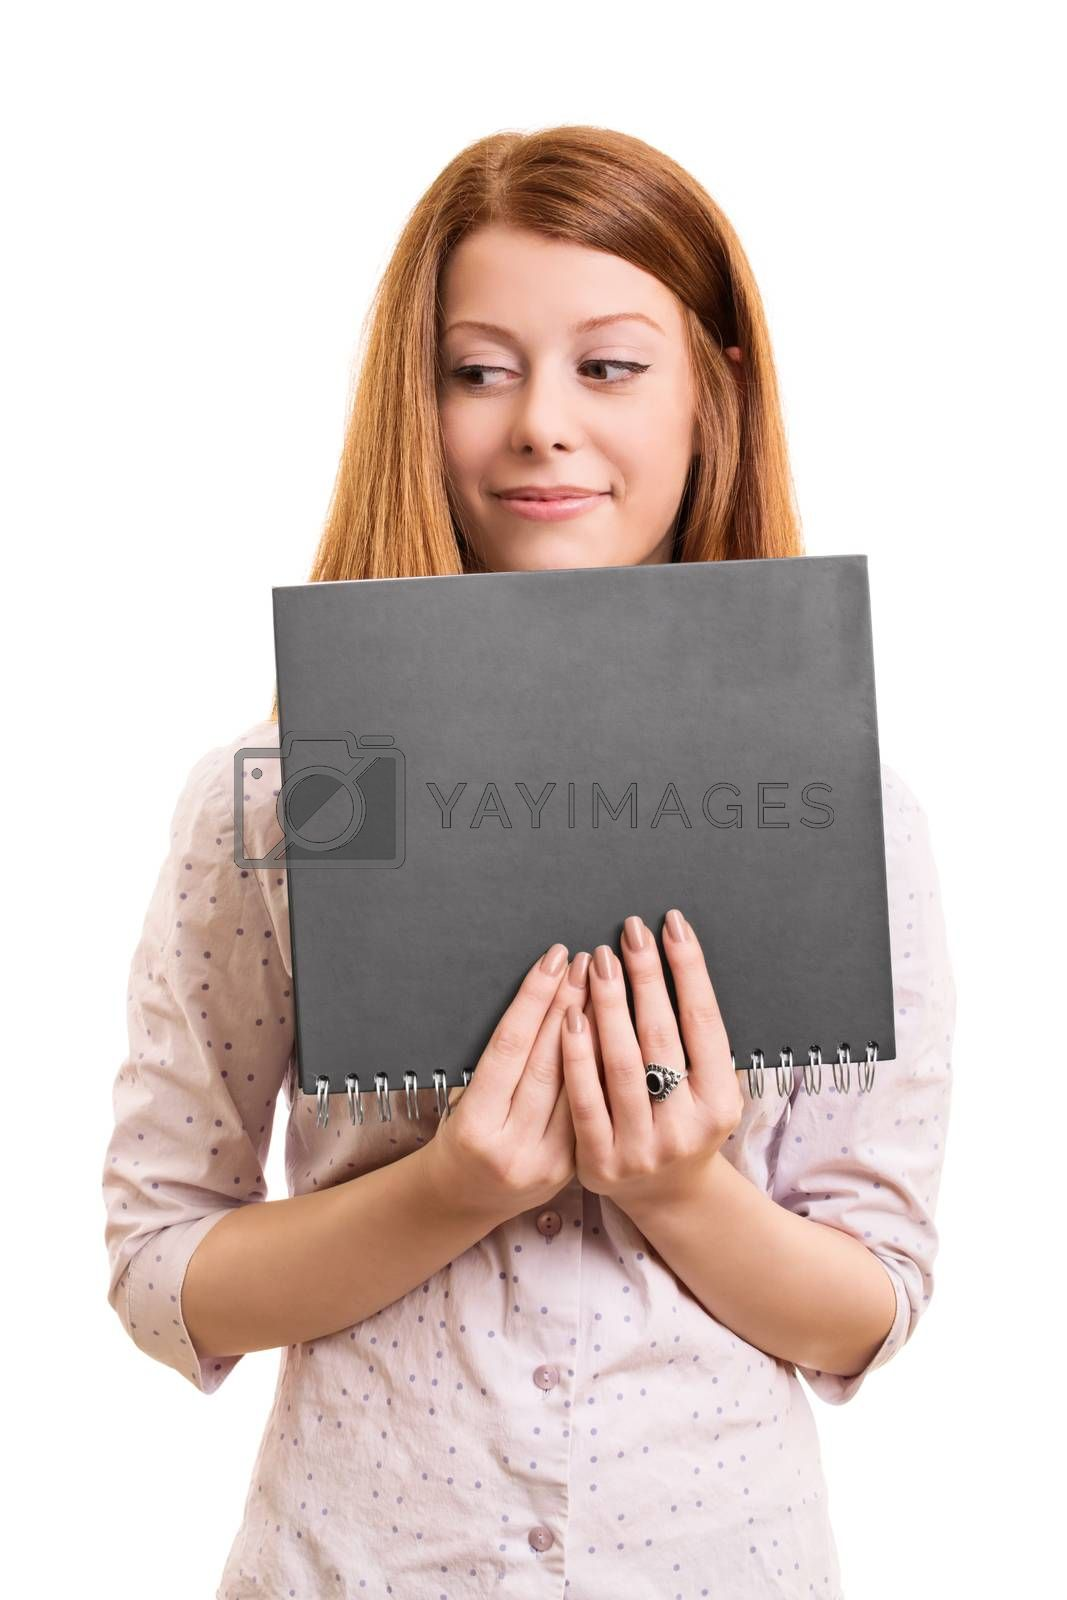 A portrait of a smiling beautiful girl, holding a book, isolated on white background.